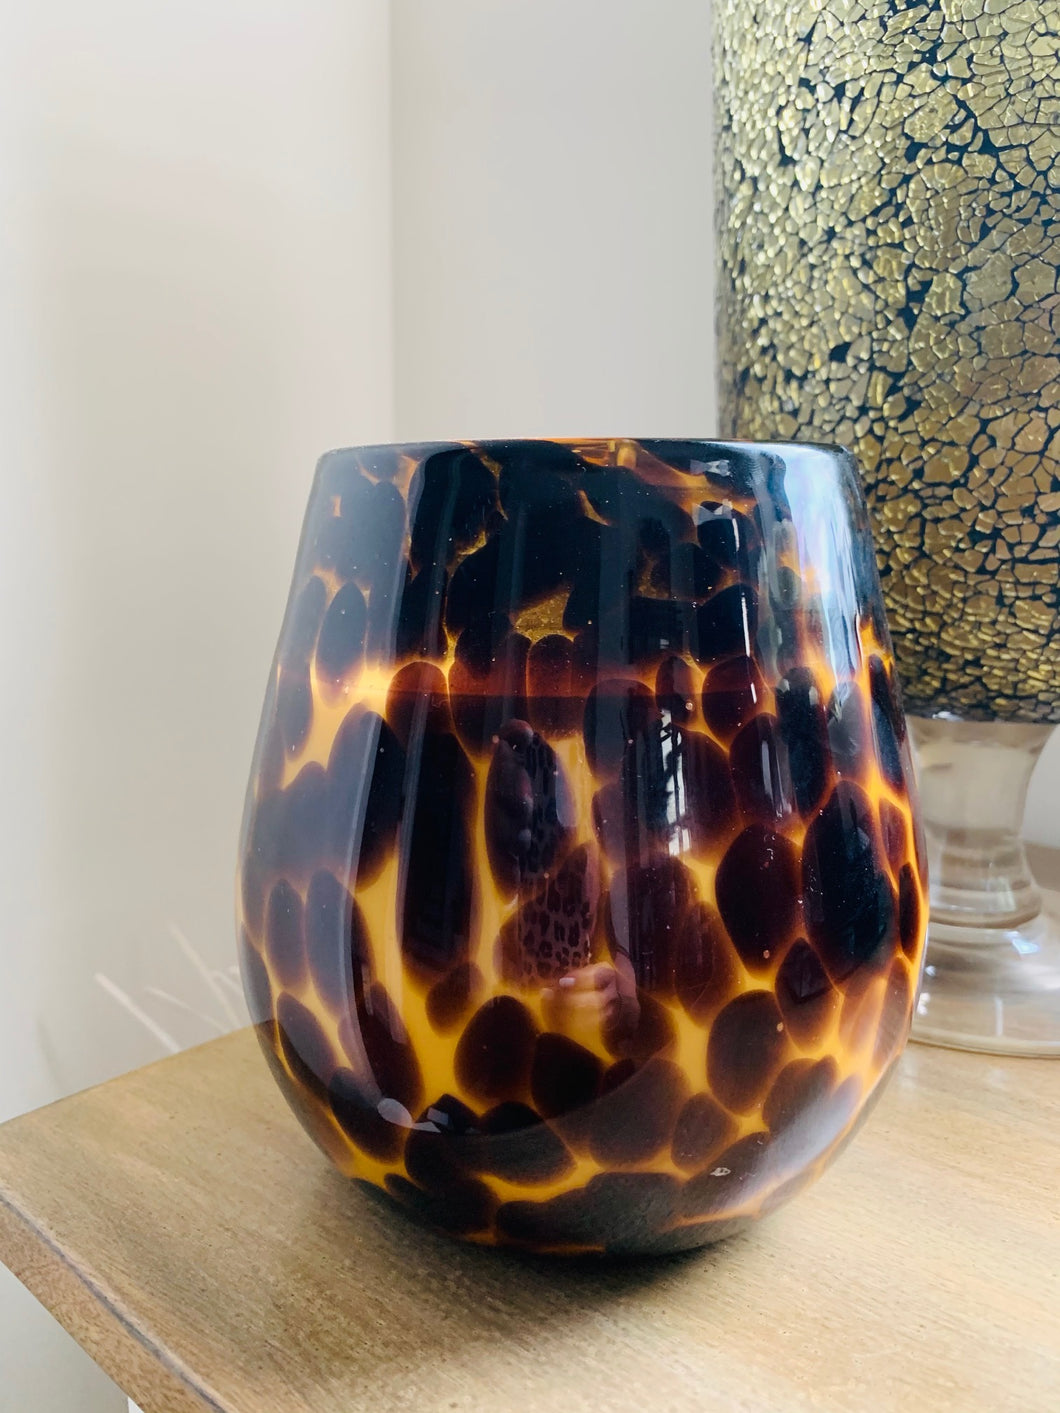 Jumbo Candle - Leopard style 1300g